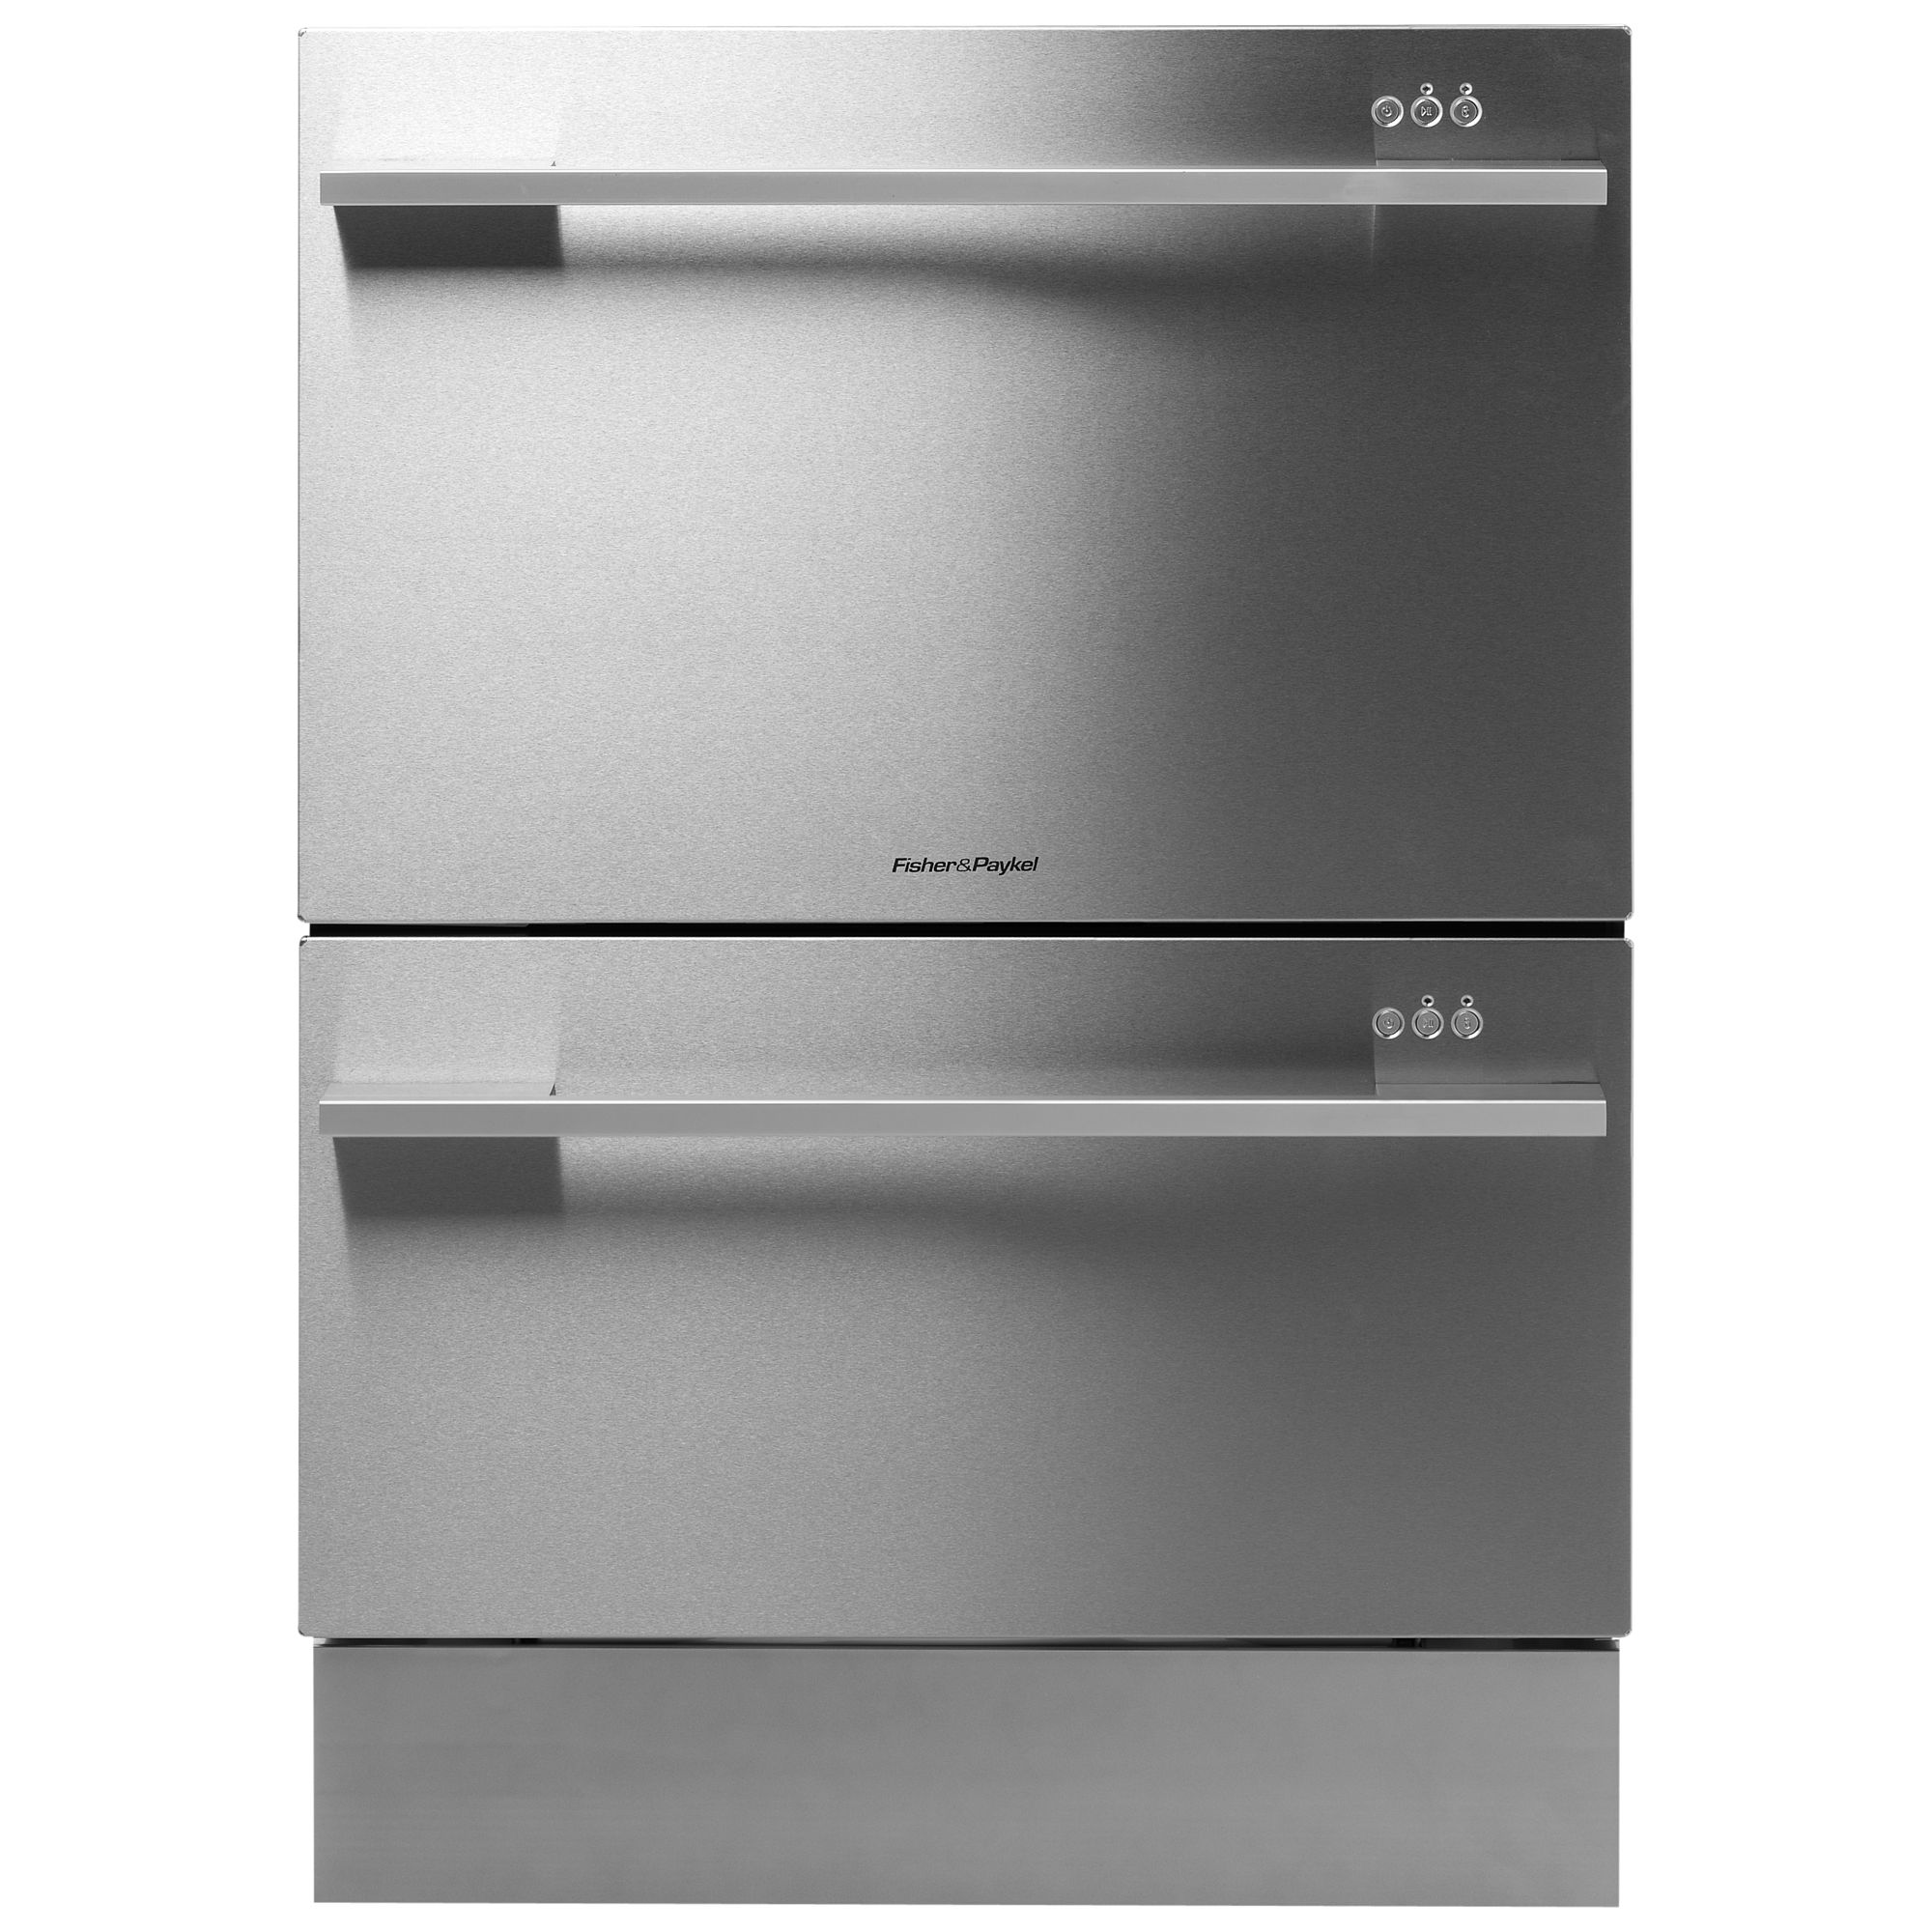 Fisher & Paykel Fisher & Paykel DD60DDFHX7 Built-in Double DishDrawer Dishwasher, Stainless Steel